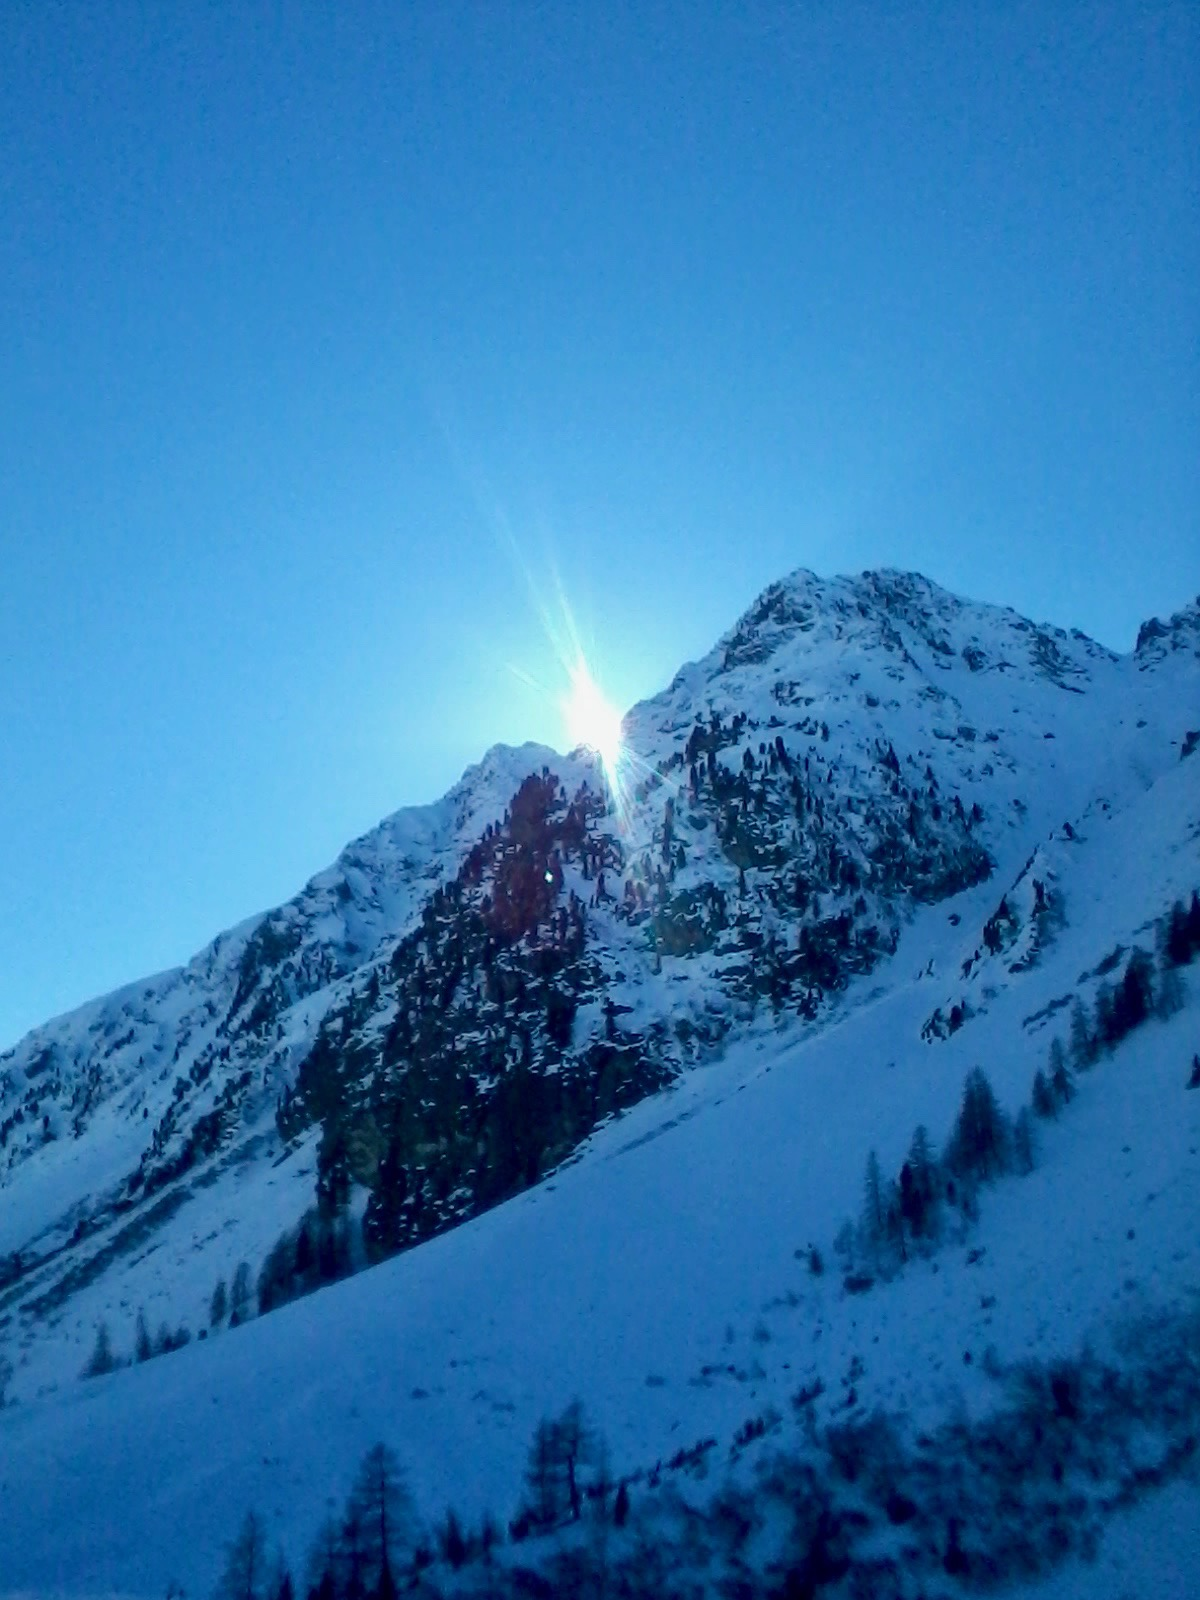 A mountain in Ischgl